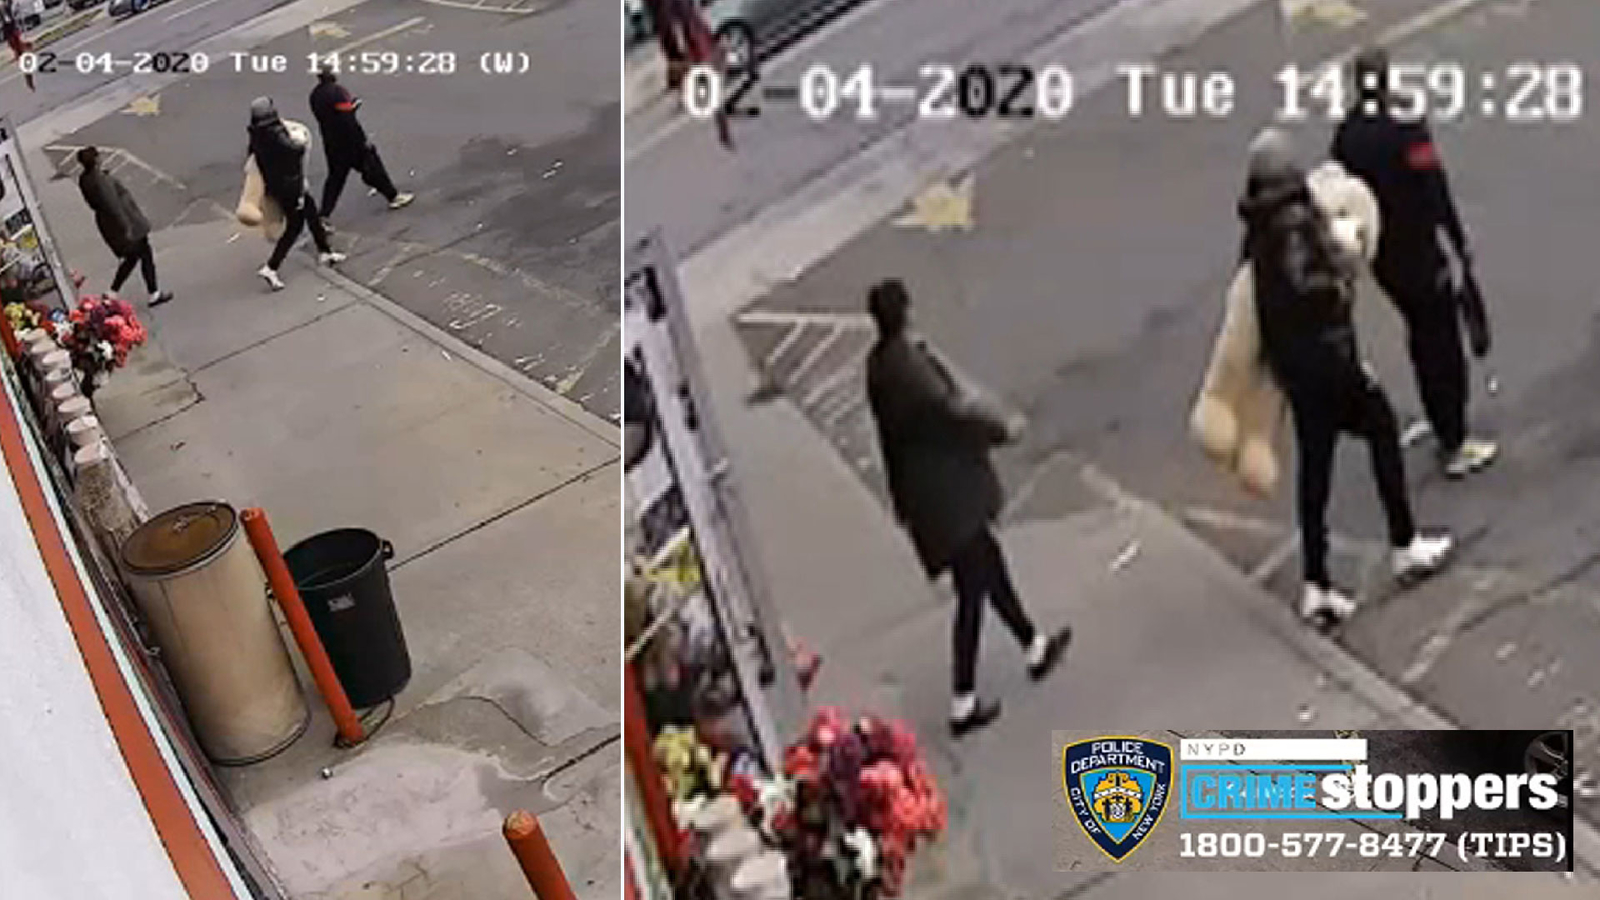 Video shows thieves who kicked worker, stole teddy bear in Brooklyn